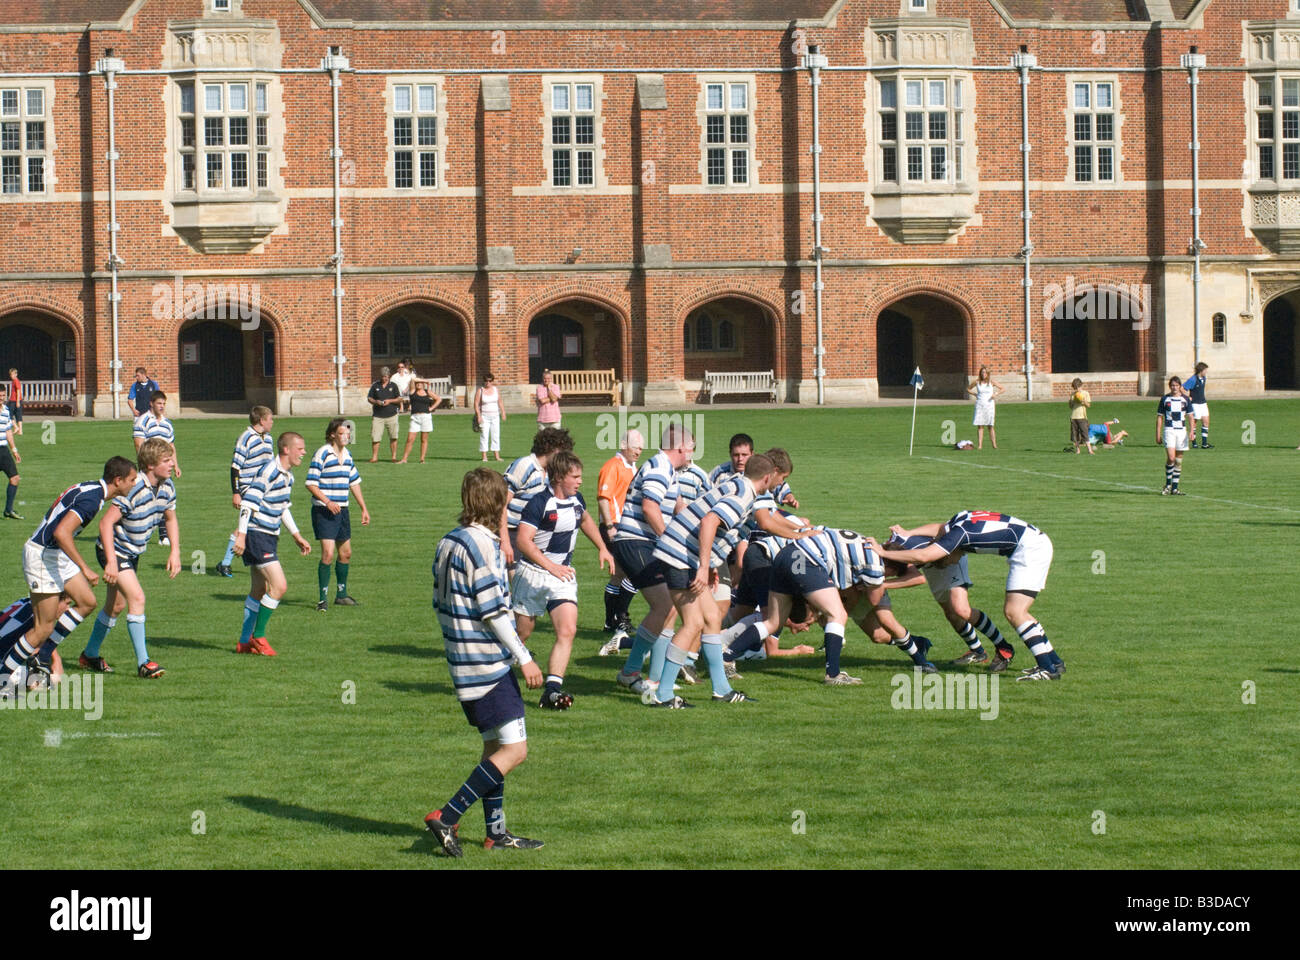 Sussex County under 18s rugby team play Eastbourne School in the grounds of Eastbourne school East Sussex on August - Stock Image